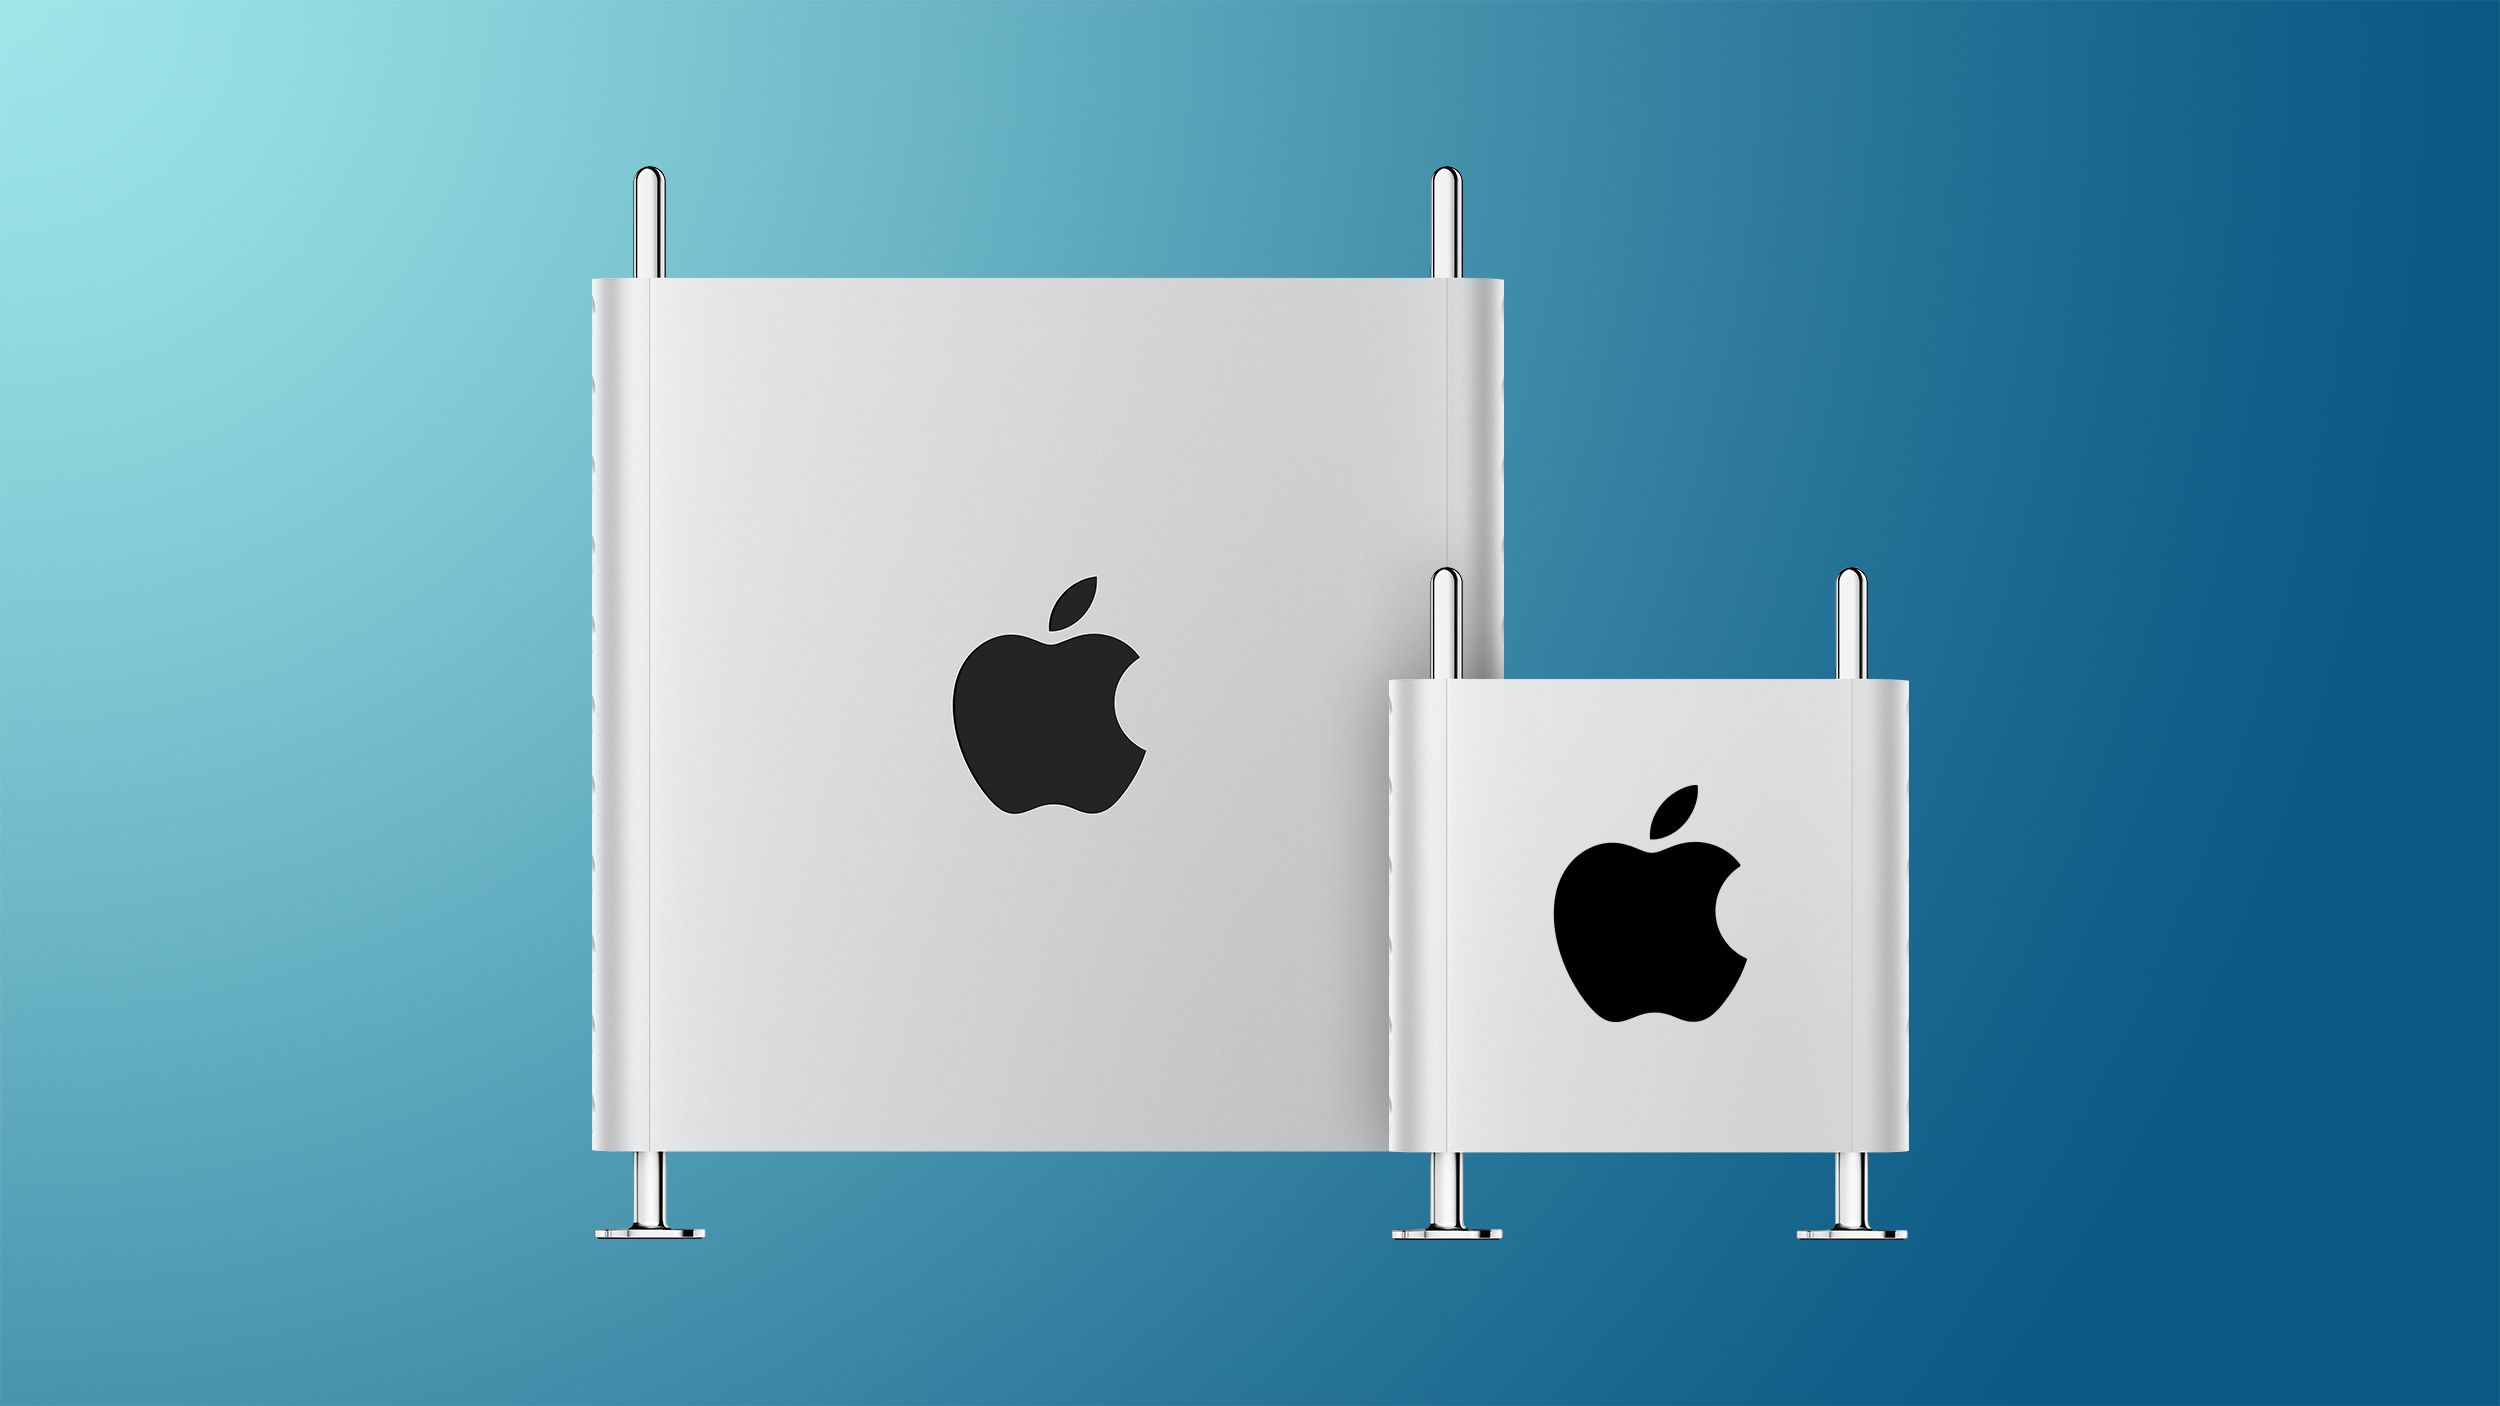 Apple Working on Two New Mac Pro Desktops, One of Which Will Be Reminiscent of Power Mac G4 Cube